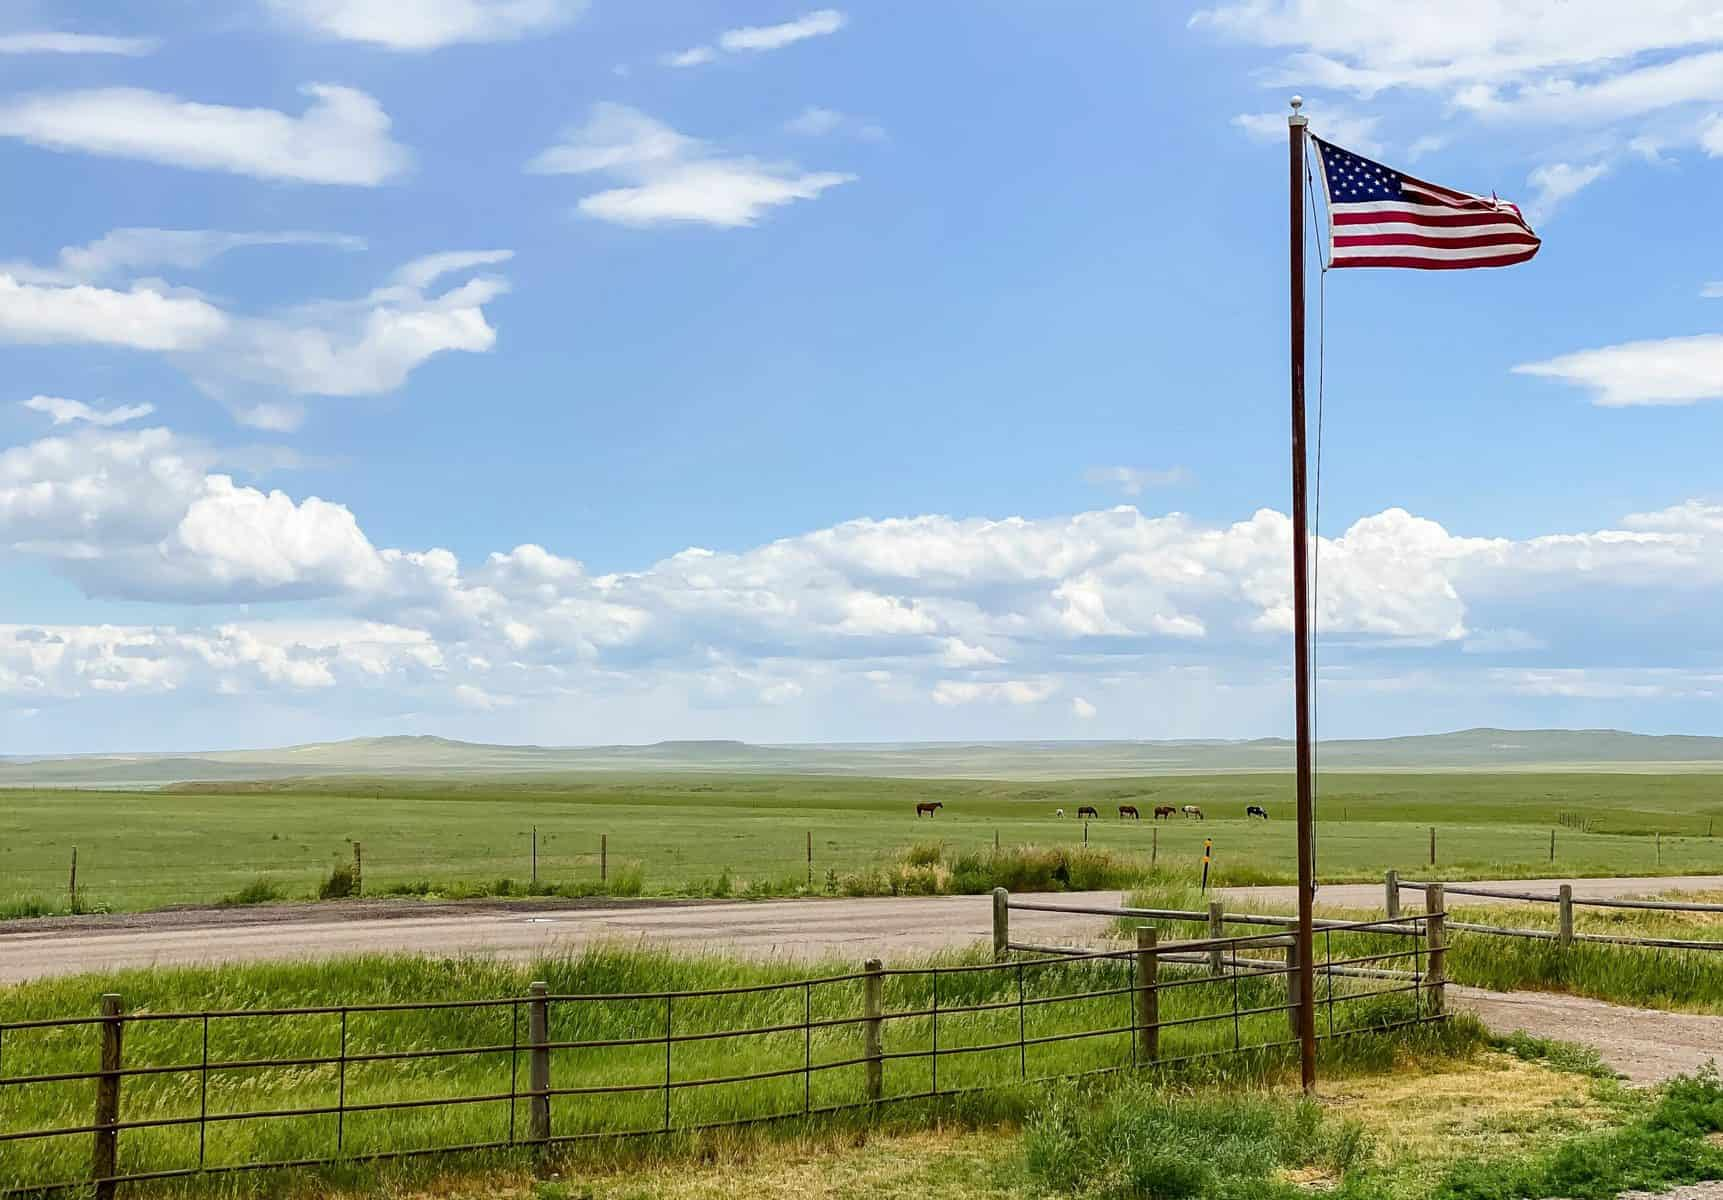 Cultivating Community While Homestead (American pride)